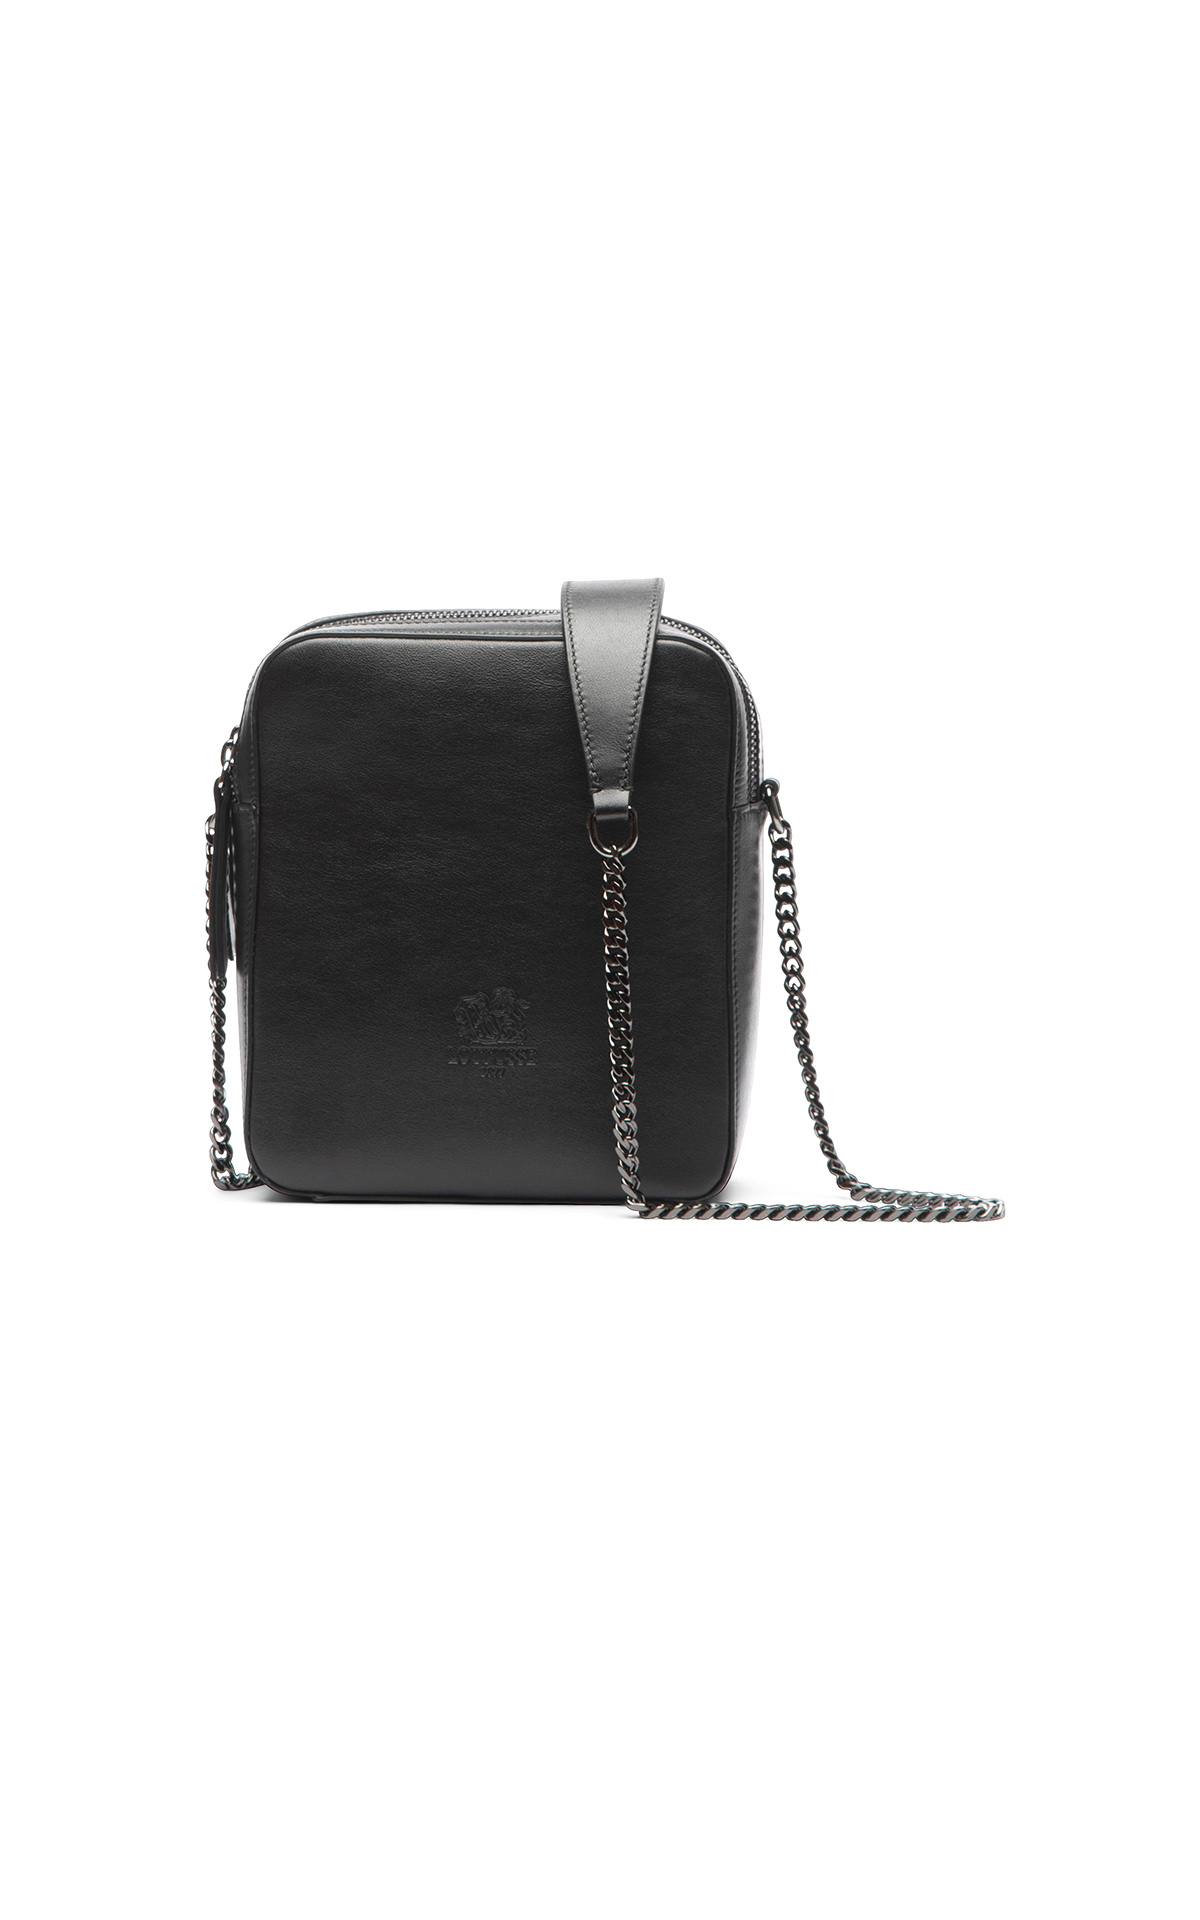 Black shoulder bag Lottusse